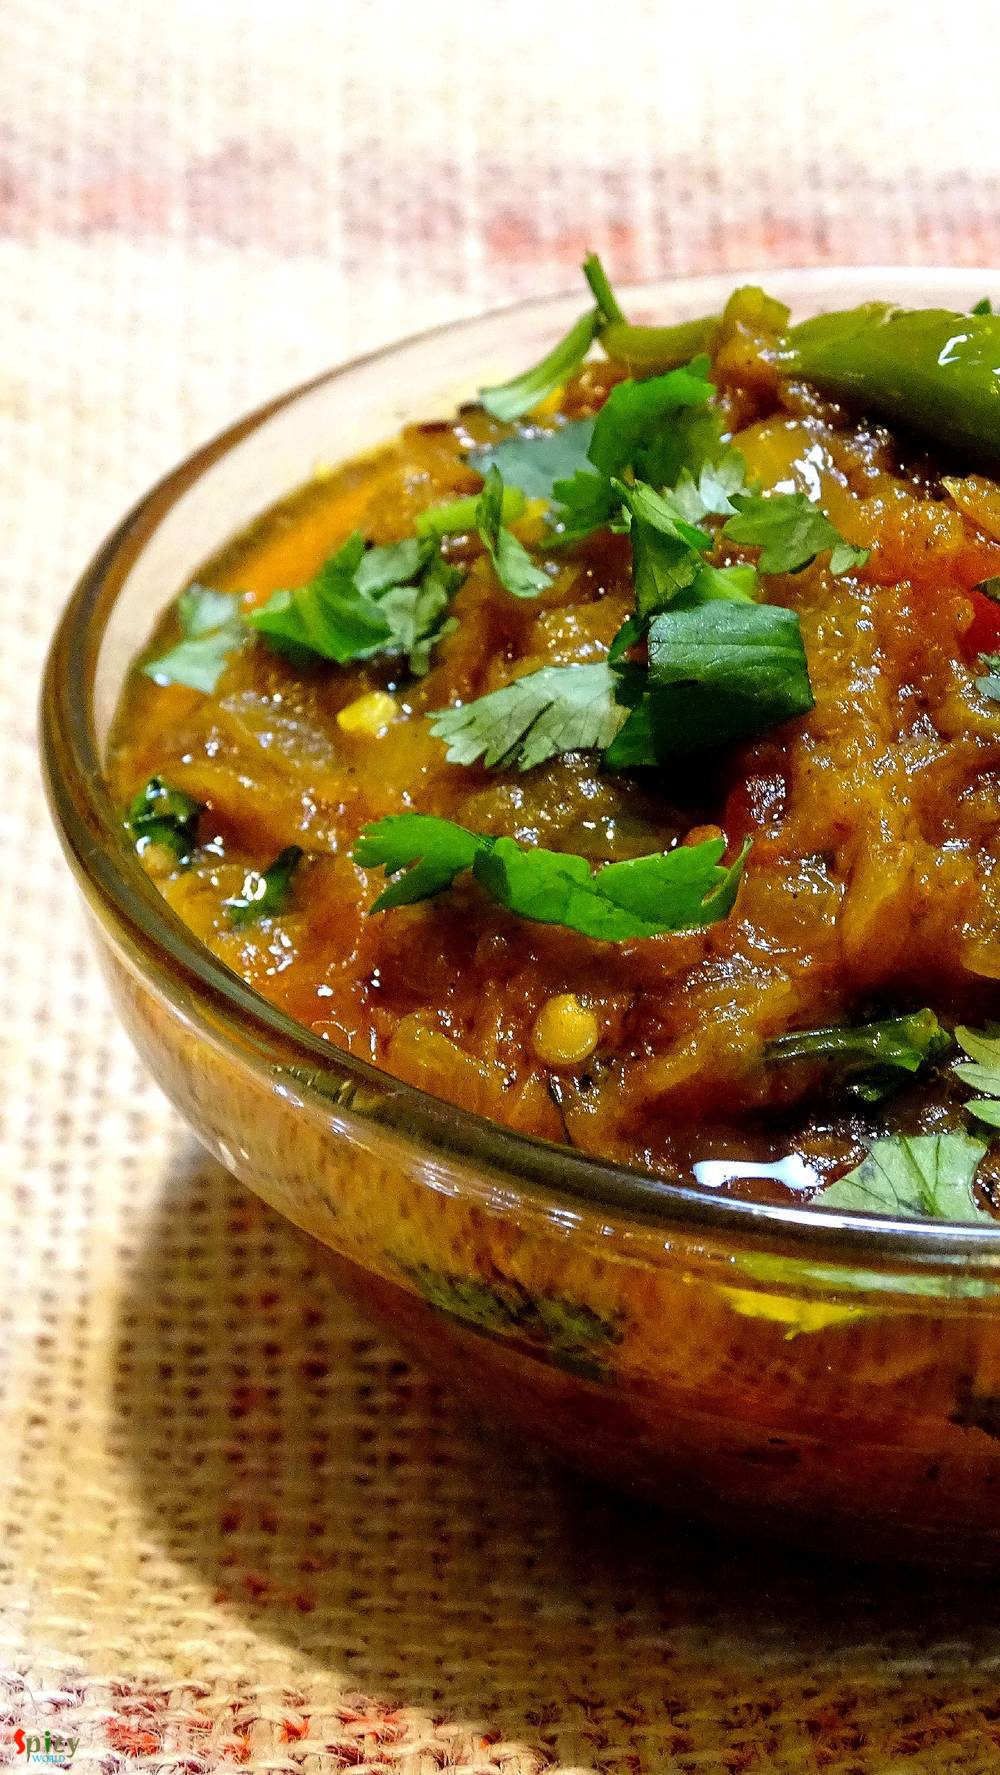 Baingan ka Bharta / Begun Bhorta / Smoked eggplant curry